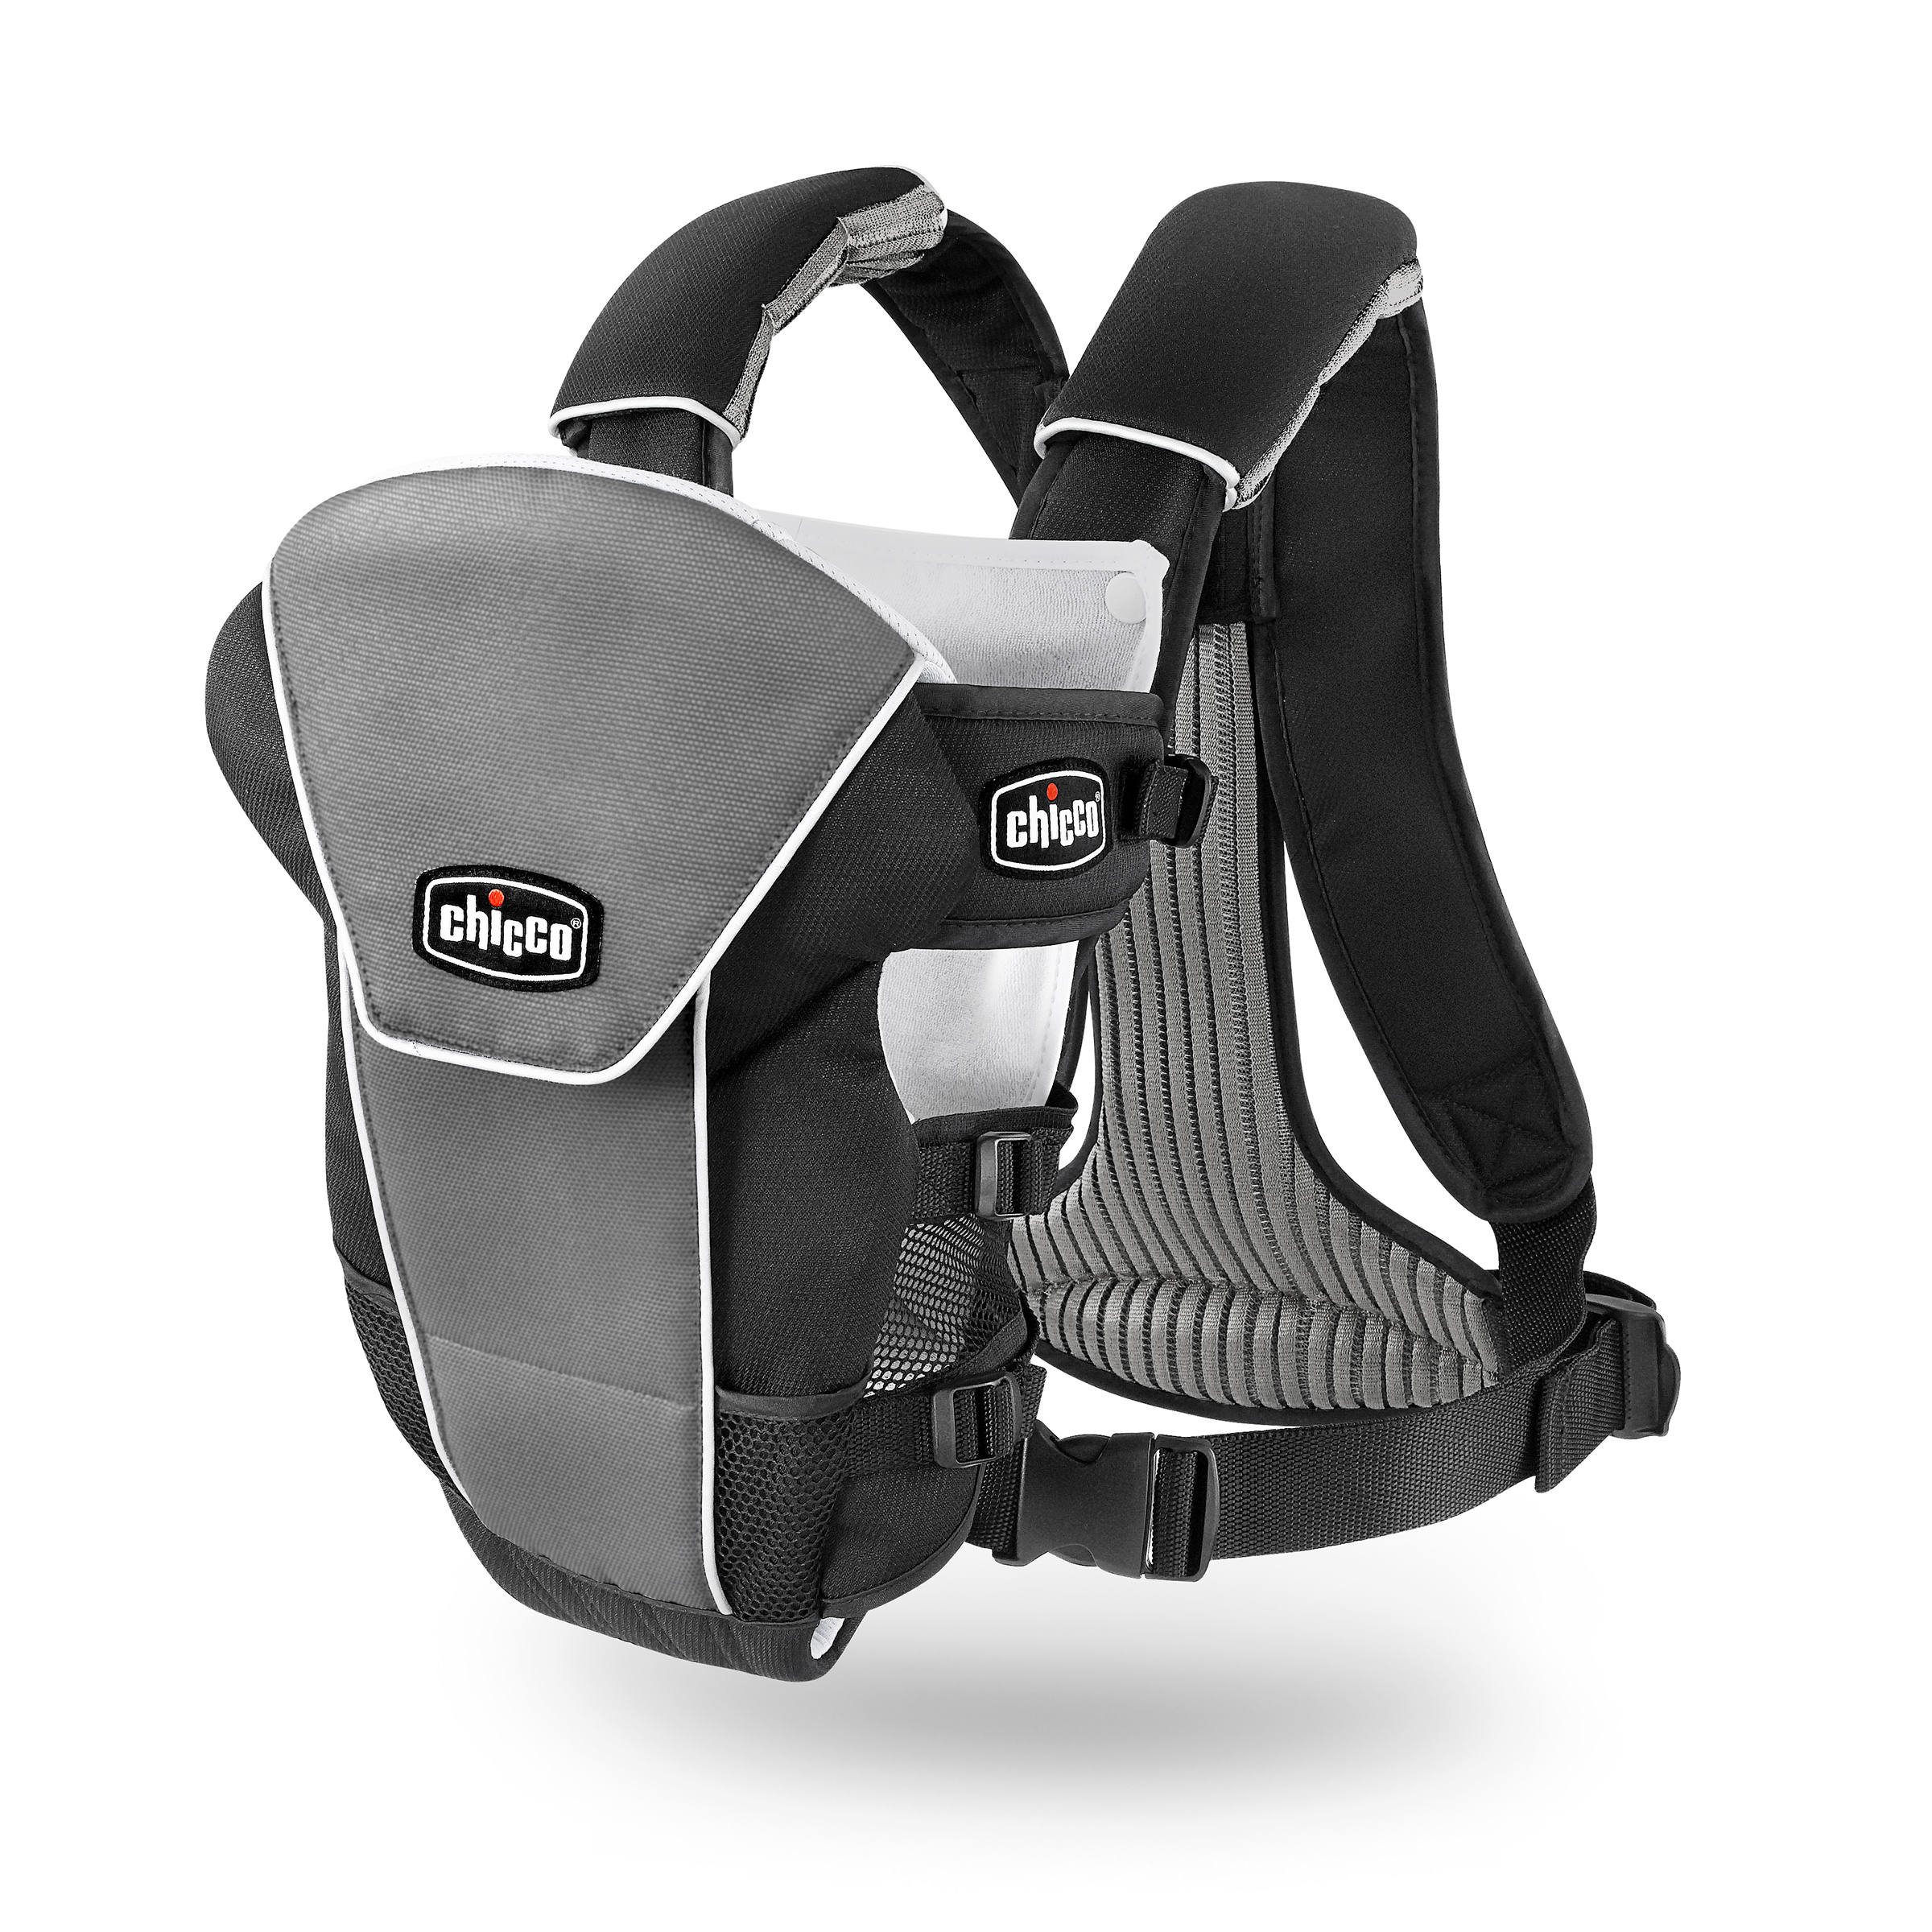 Chicco UltraSoft Magic Air Infant Carrier, Q Collection by Chicco